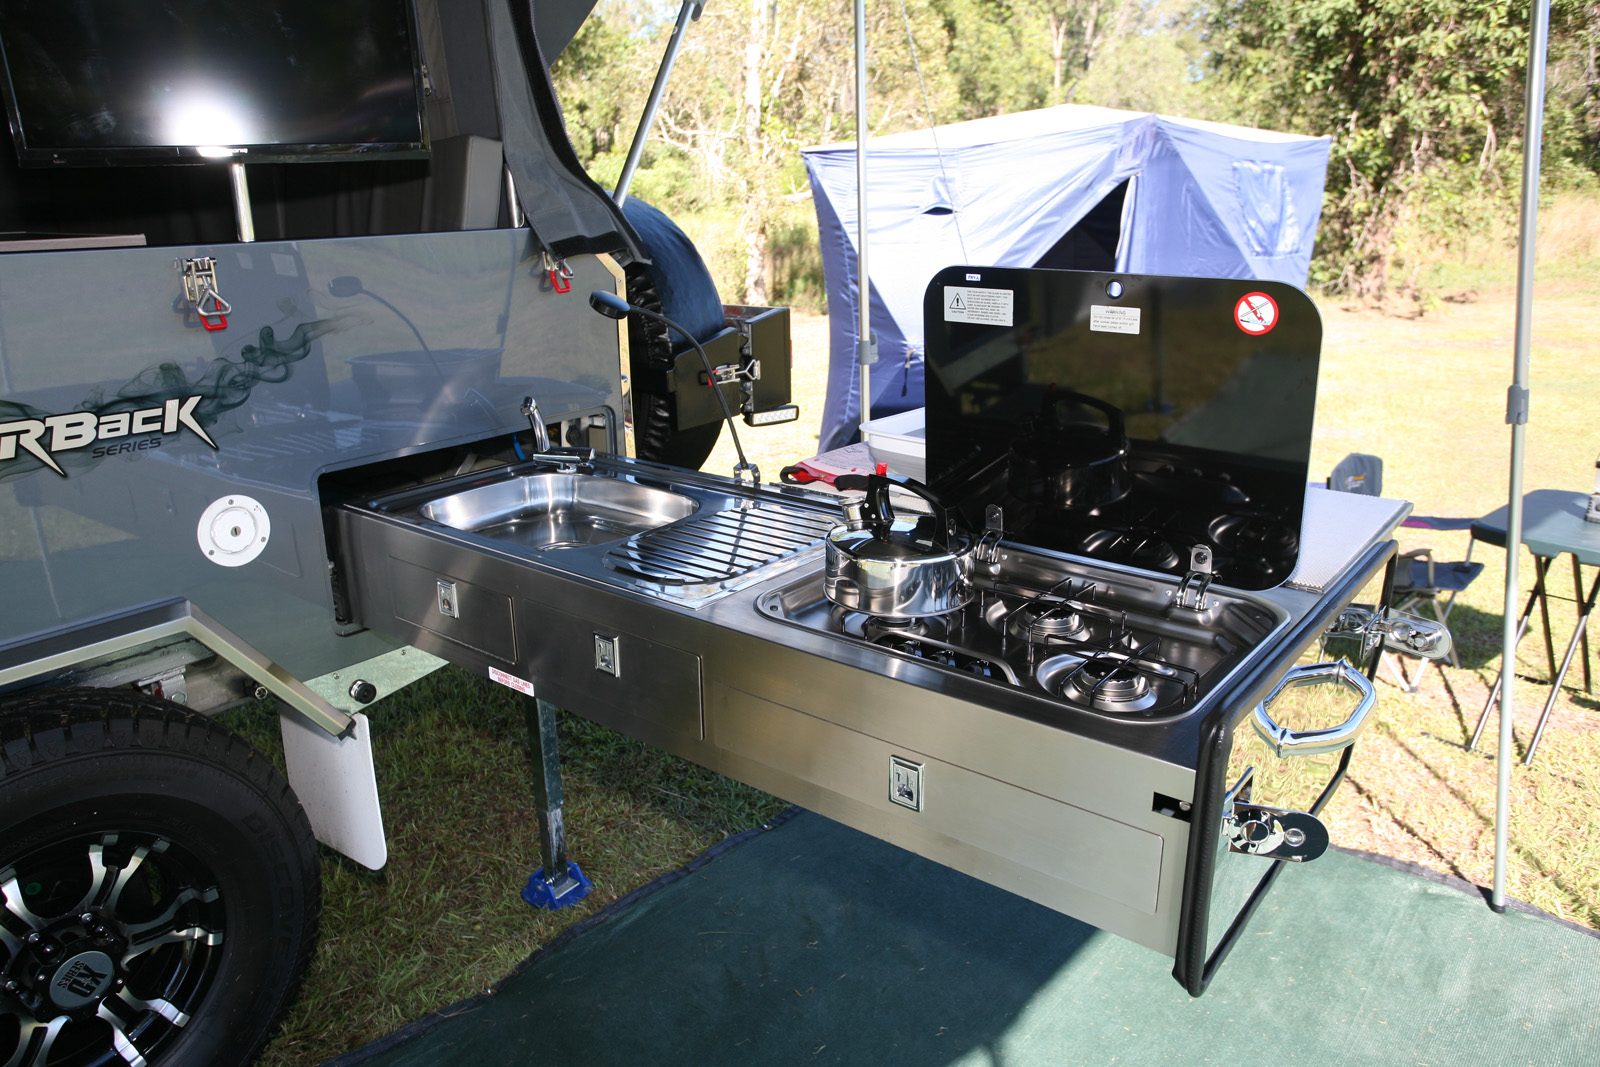 External barbecue